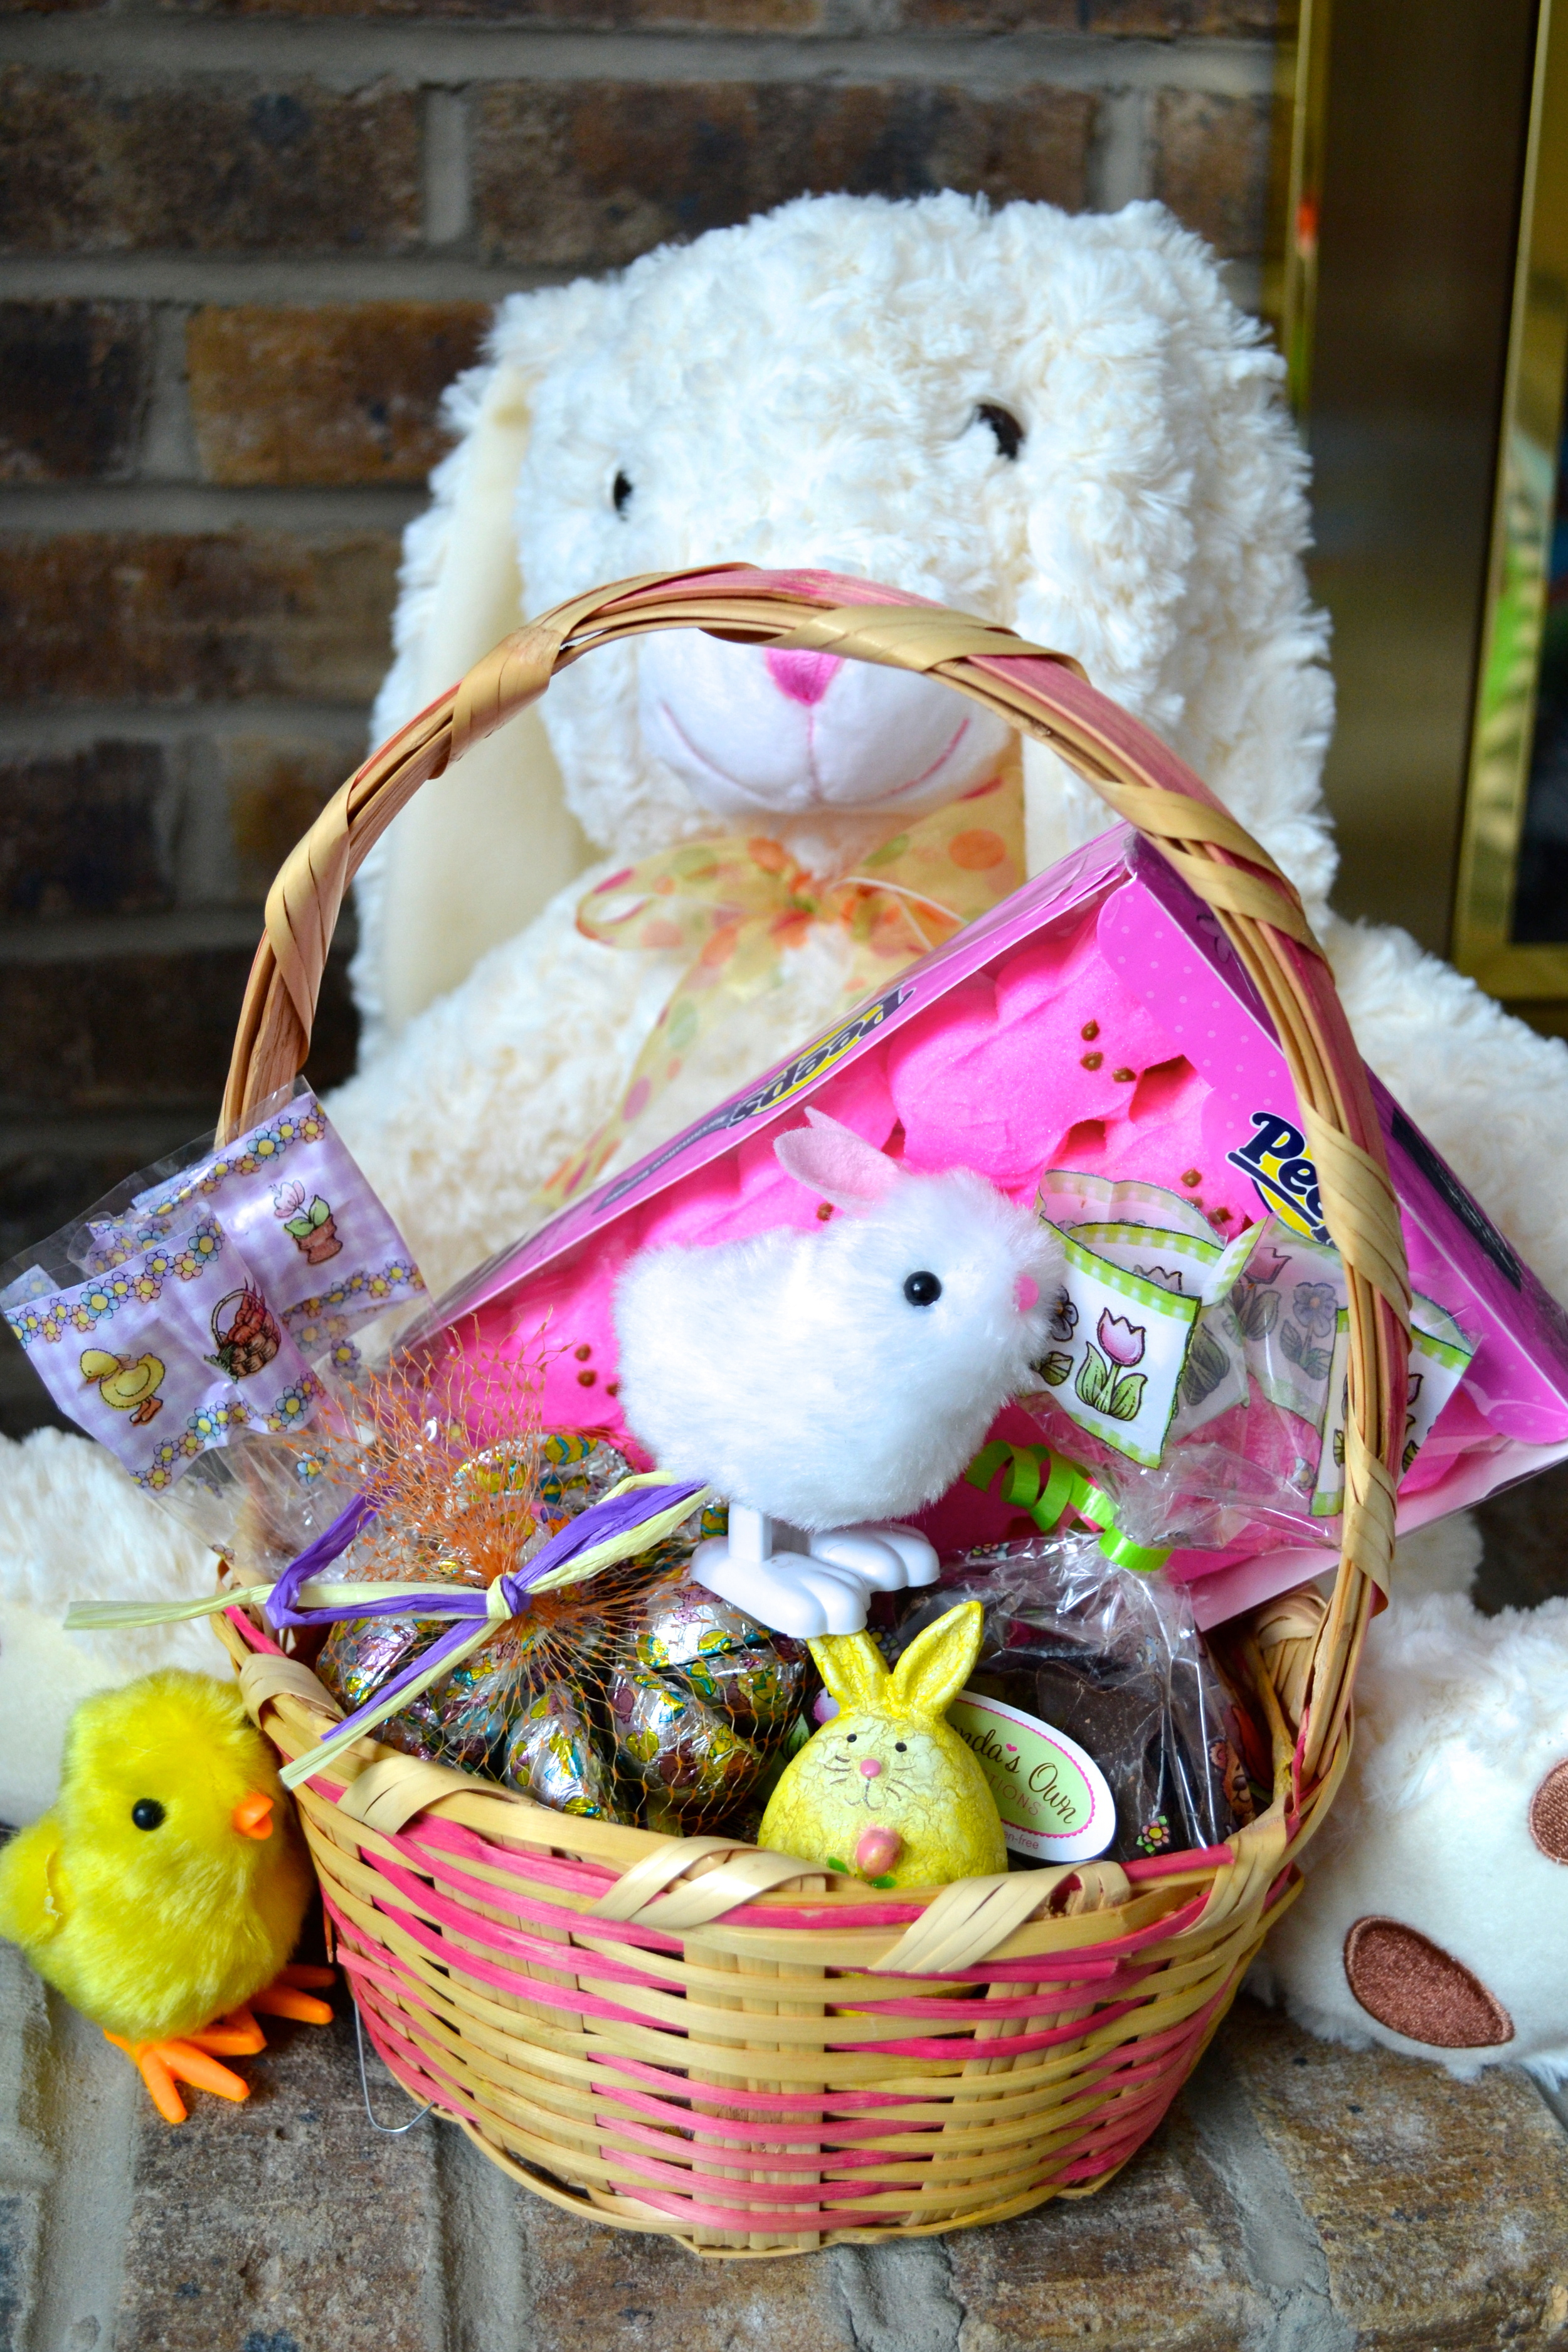 Kristen rutter the nut free easter bunny is coming and he is bringing chocolate negle Image collections